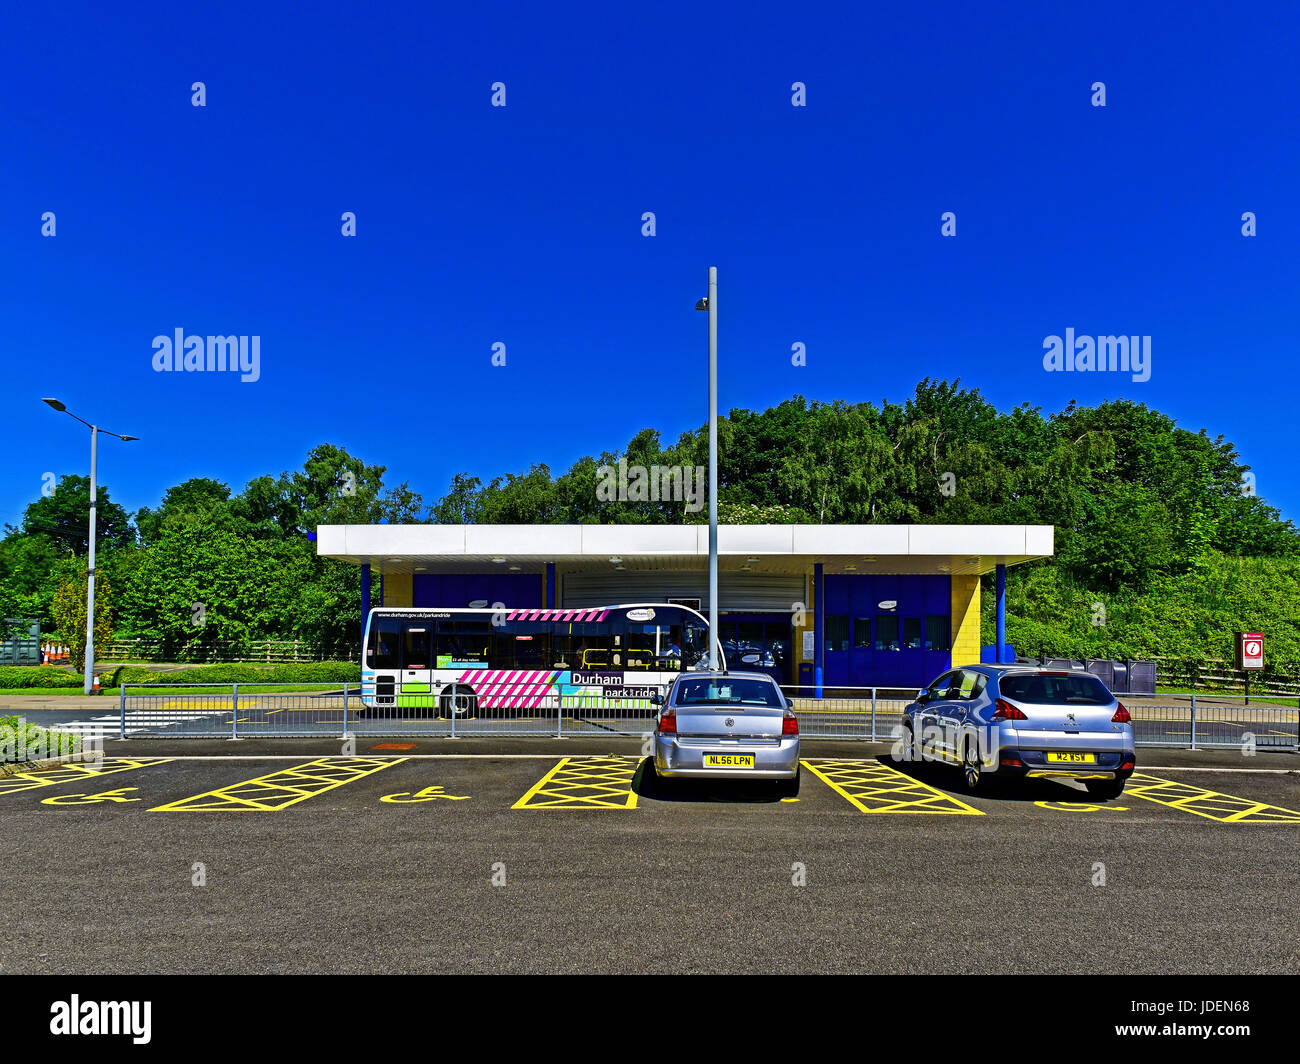 Durham City Park And Ride Bus Service Stock Photo 145997440 Alamy